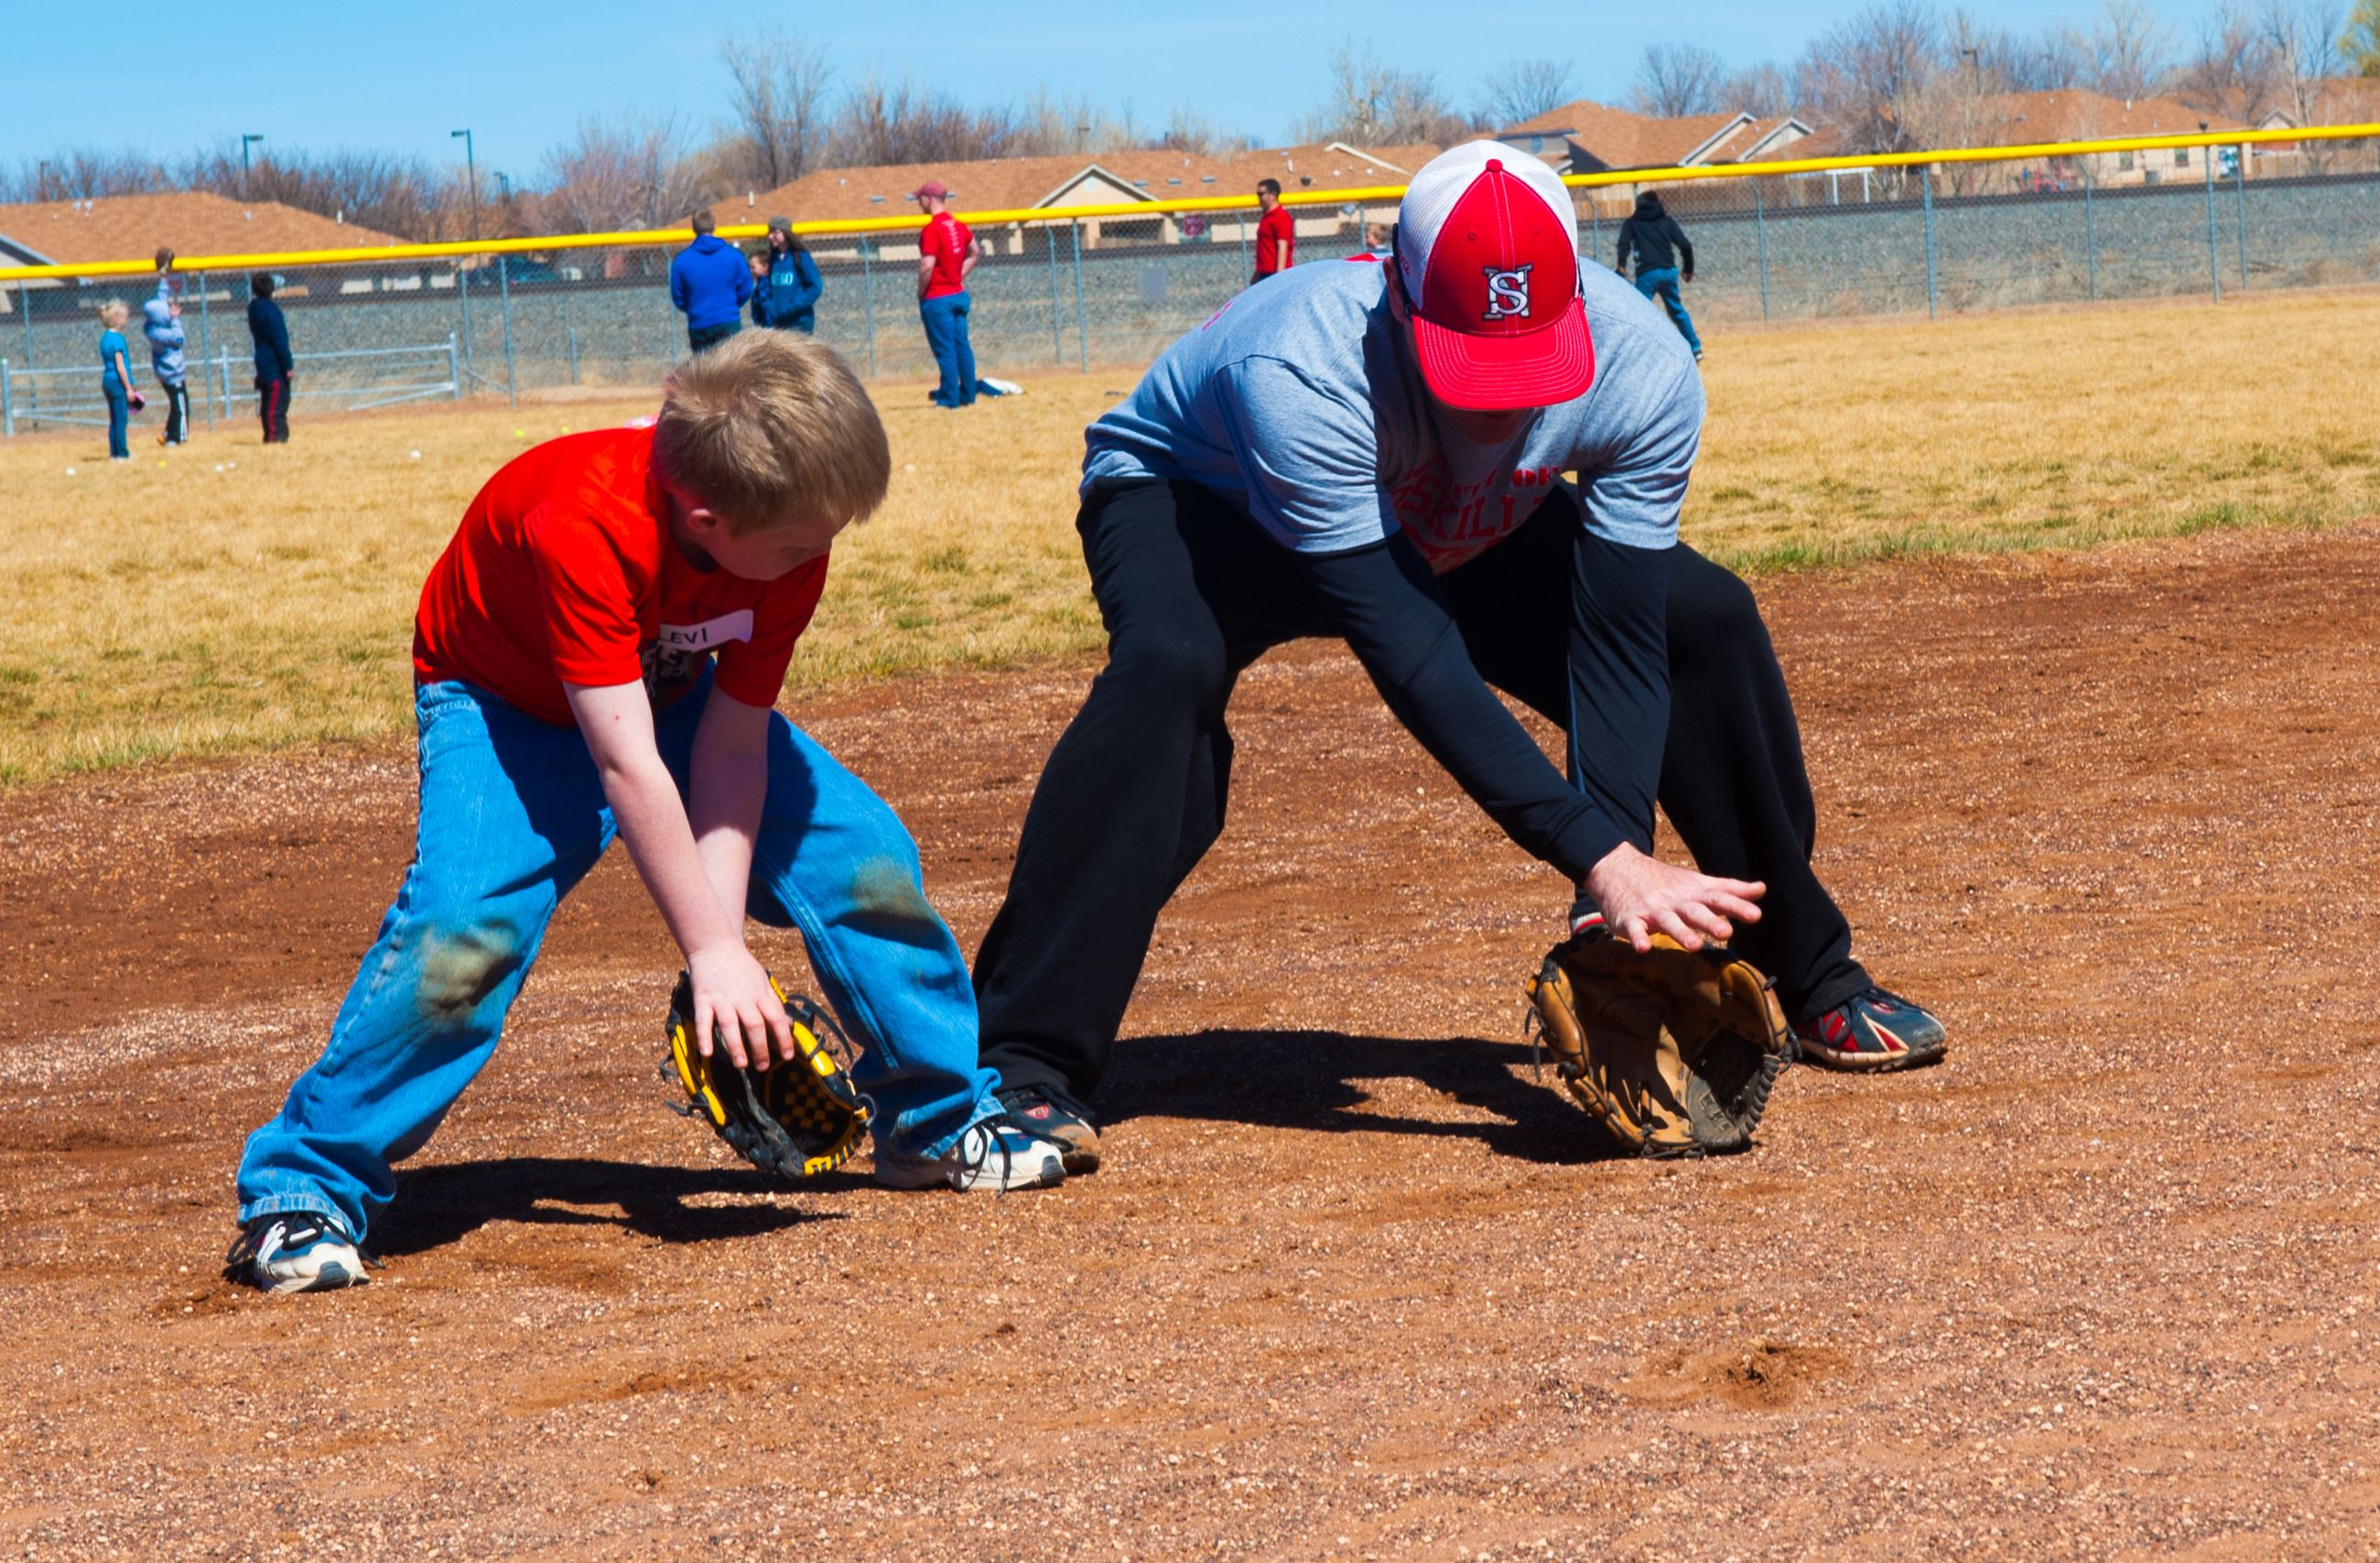 Young Boy Learning how to Field Groundballs